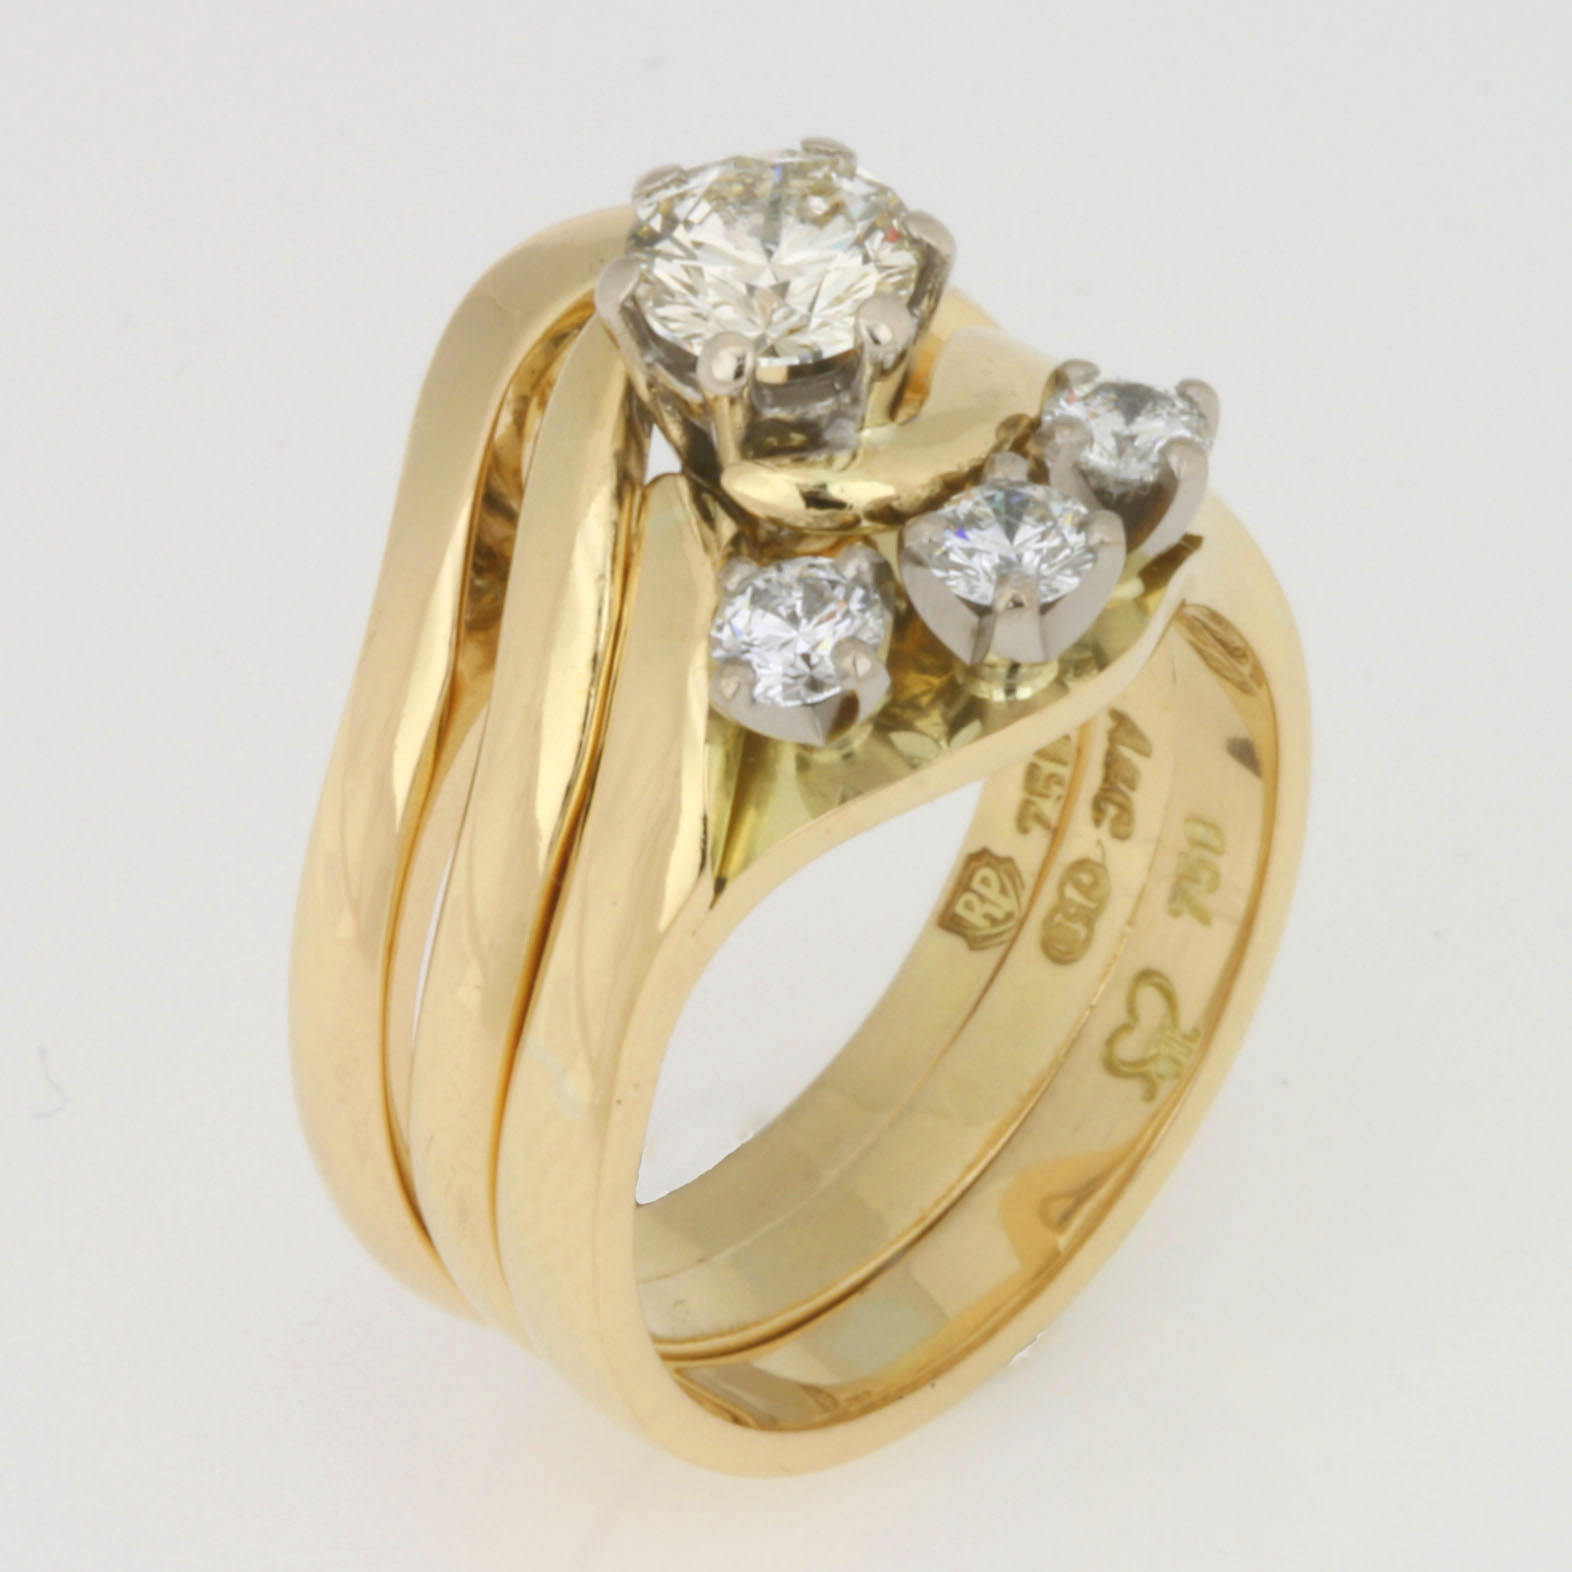 Handmade ladies 18ct yellow gold diamond wedding, engagement and eternity ring set